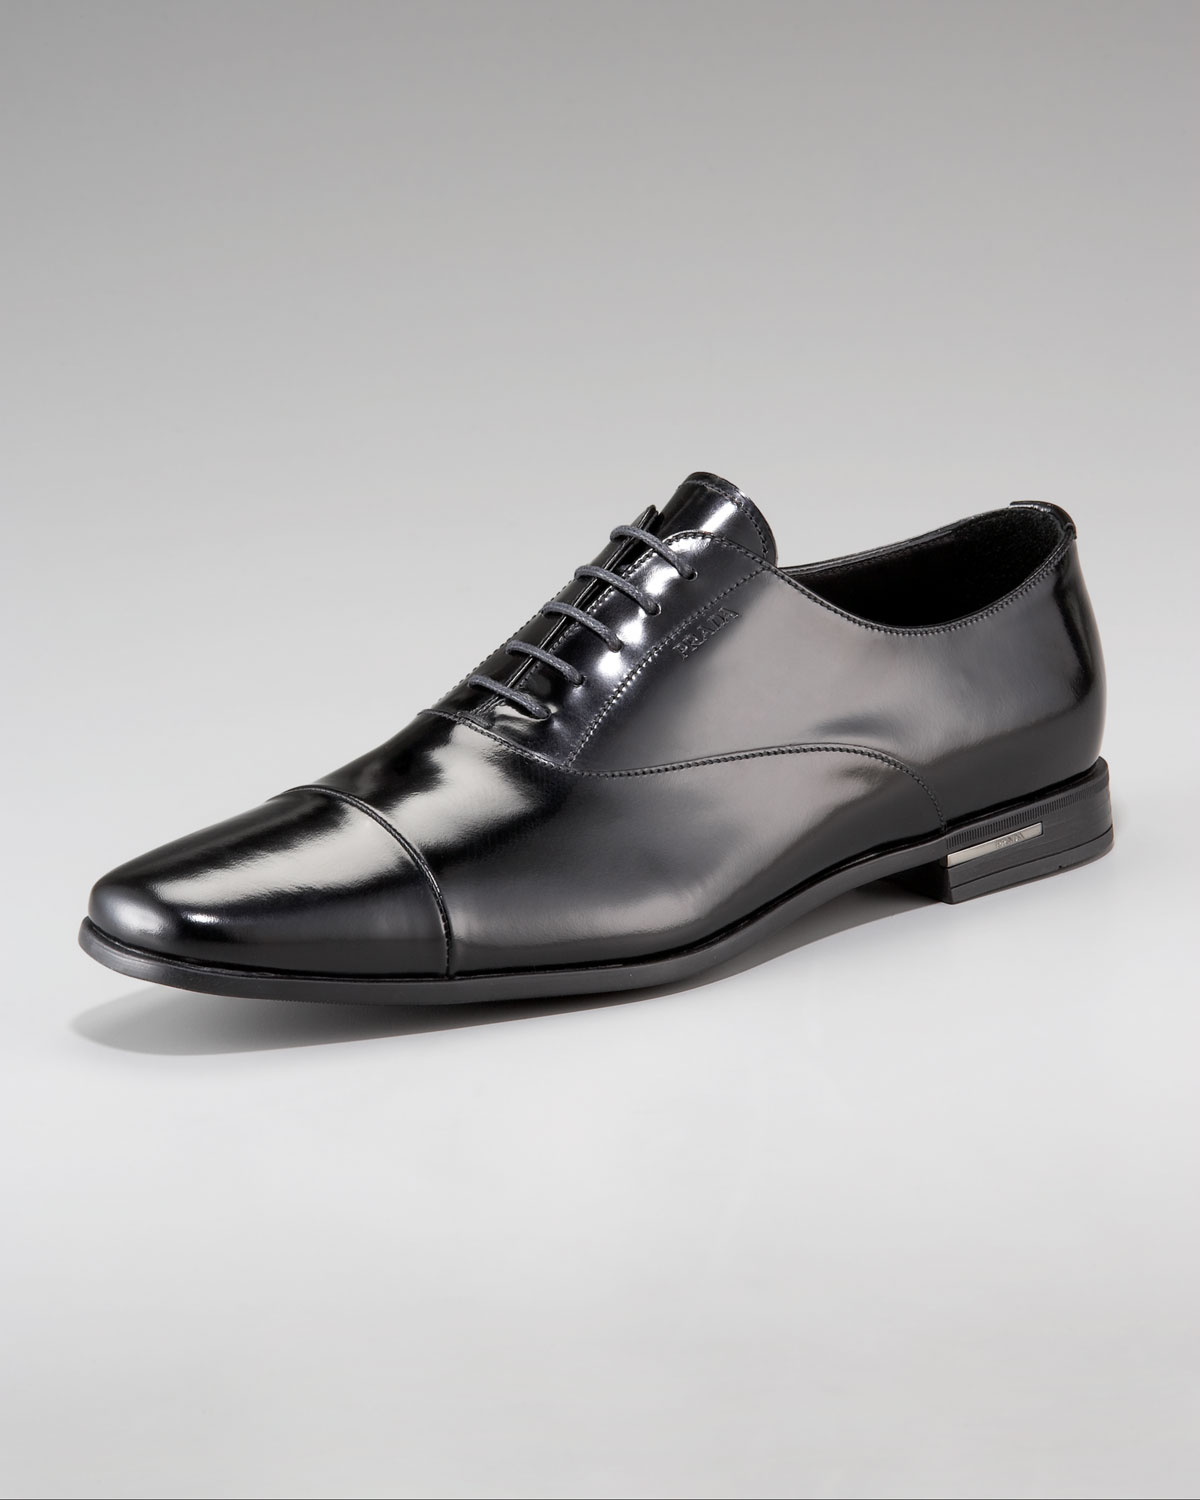 Black Lace Up Shoes Prada 15vyj8